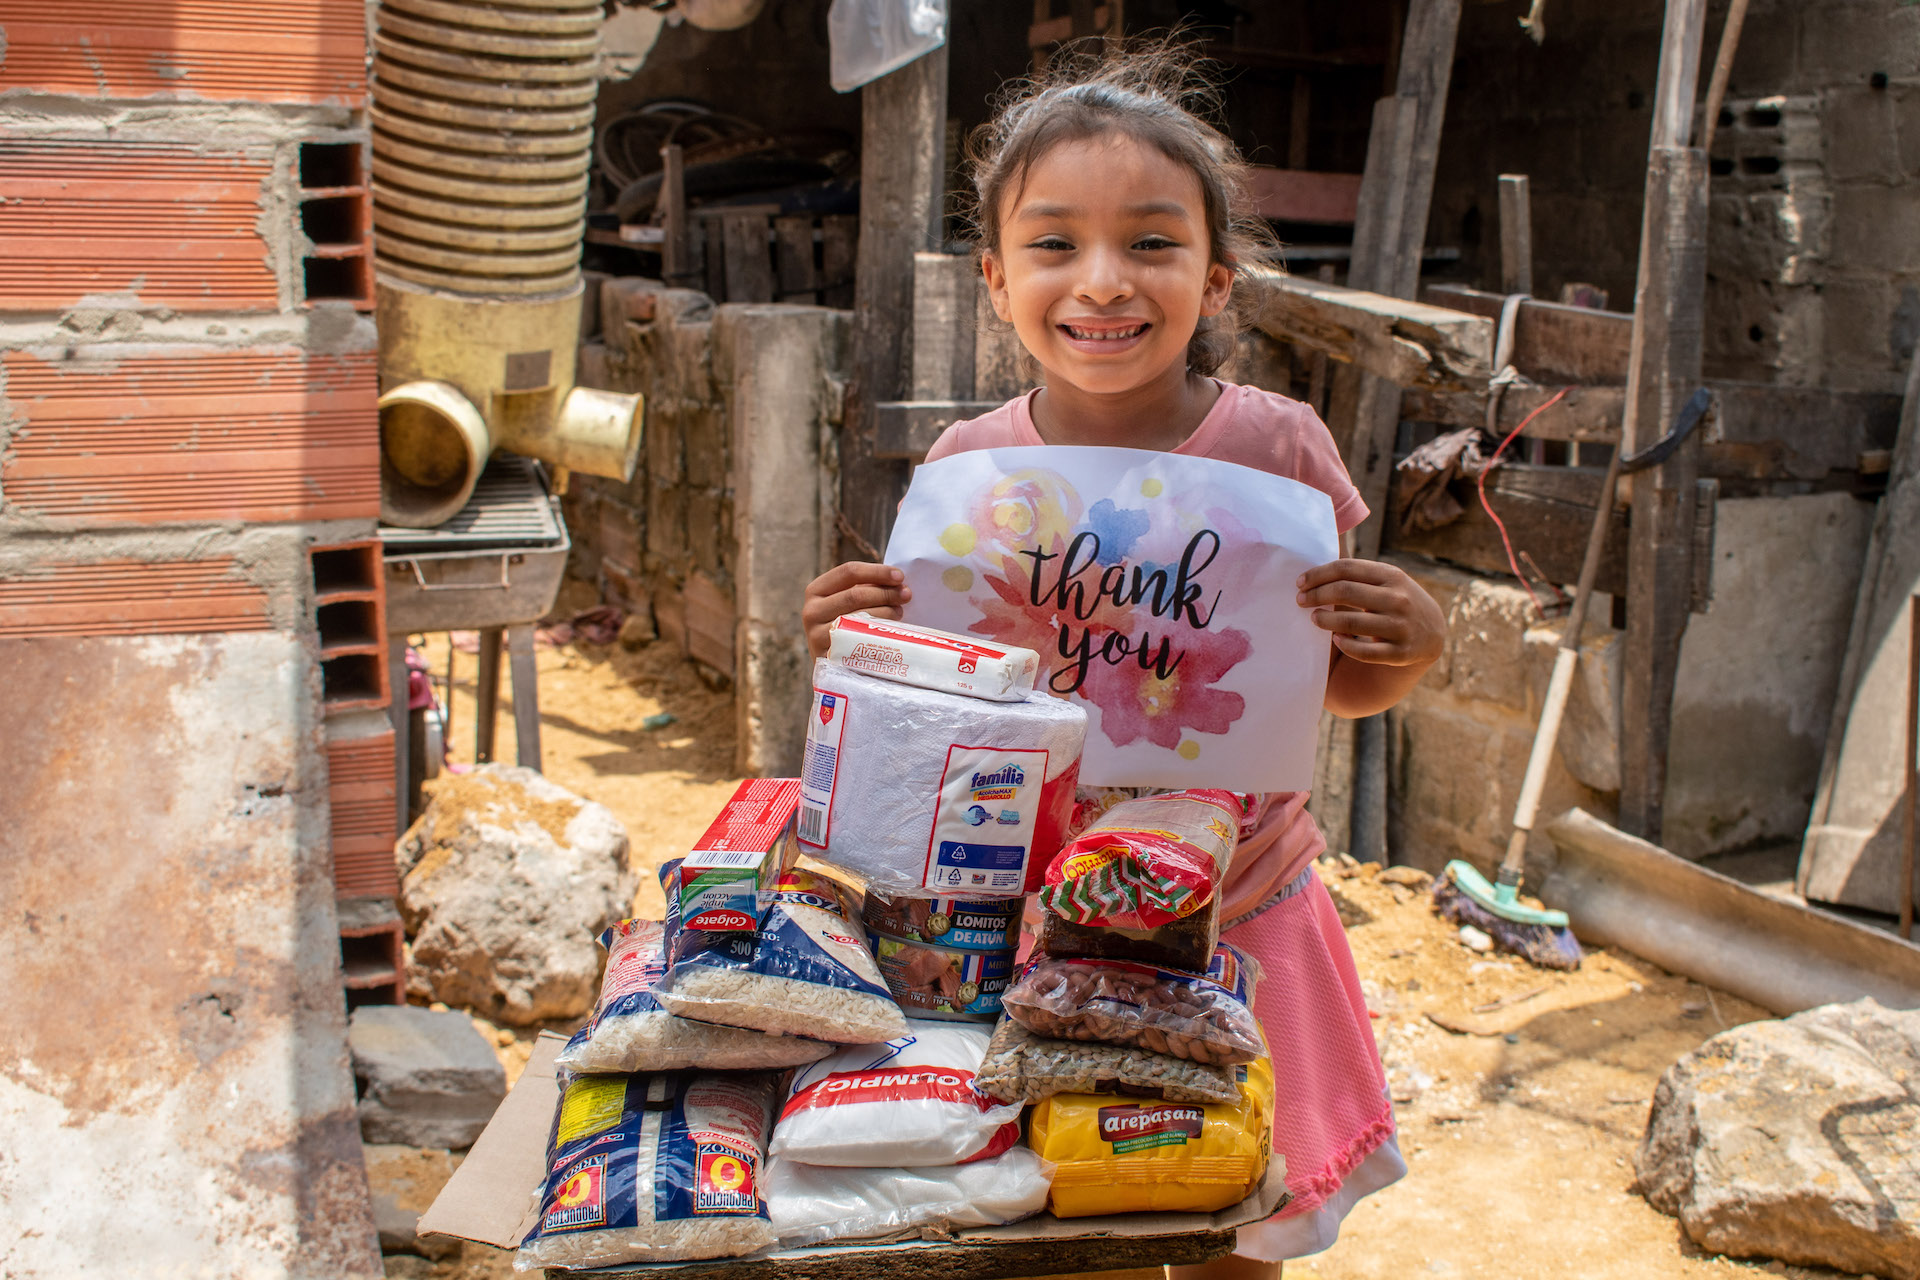 """In Colombia, a girl holds a sign that says """"Thank You"""", standing beside a grocery delivery from Compassion."""